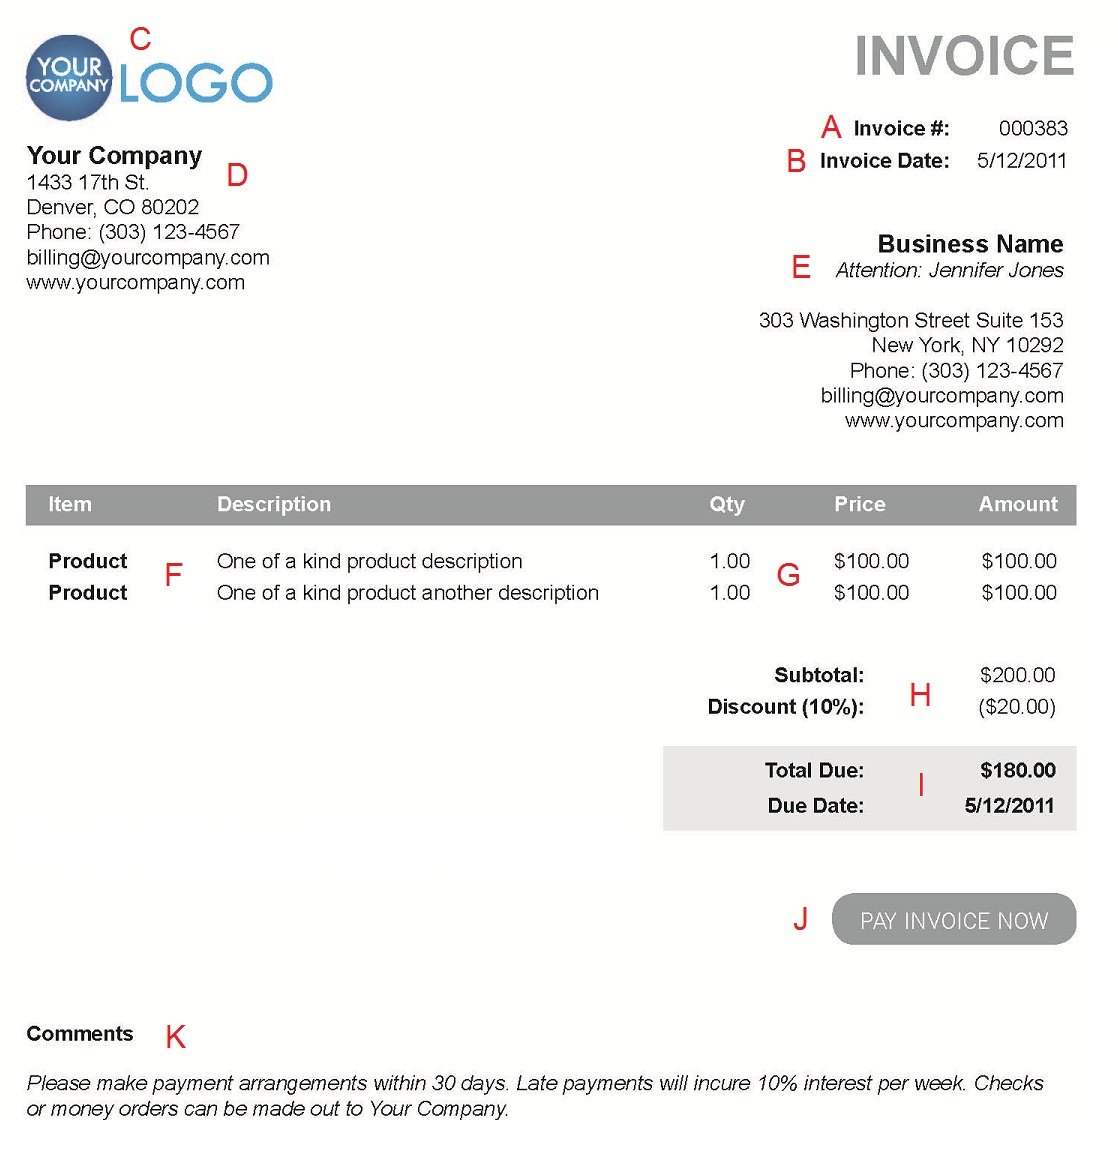 Coolmathgamesus  Remarkable The  Different Sections Of An Electronic Payment Invoice With Exquisite A  With Nice Simple Invoice Format Also Quick Books Invoicing In Addition Freelance Designer Invoice And Commercial Proforma Invoice As Well As Tnt Commercial Invoice Additionally Honda Civic Invoice From Paysimplecom With Coolmathgamesus  Exquisite The  Different Sections Of An Electronic Payment Invoice With Nice A  And Remarkable Simple Invoice Format Also Quick Books Invoicing In Addition Freelance Designer Invoice From Paysimplecom